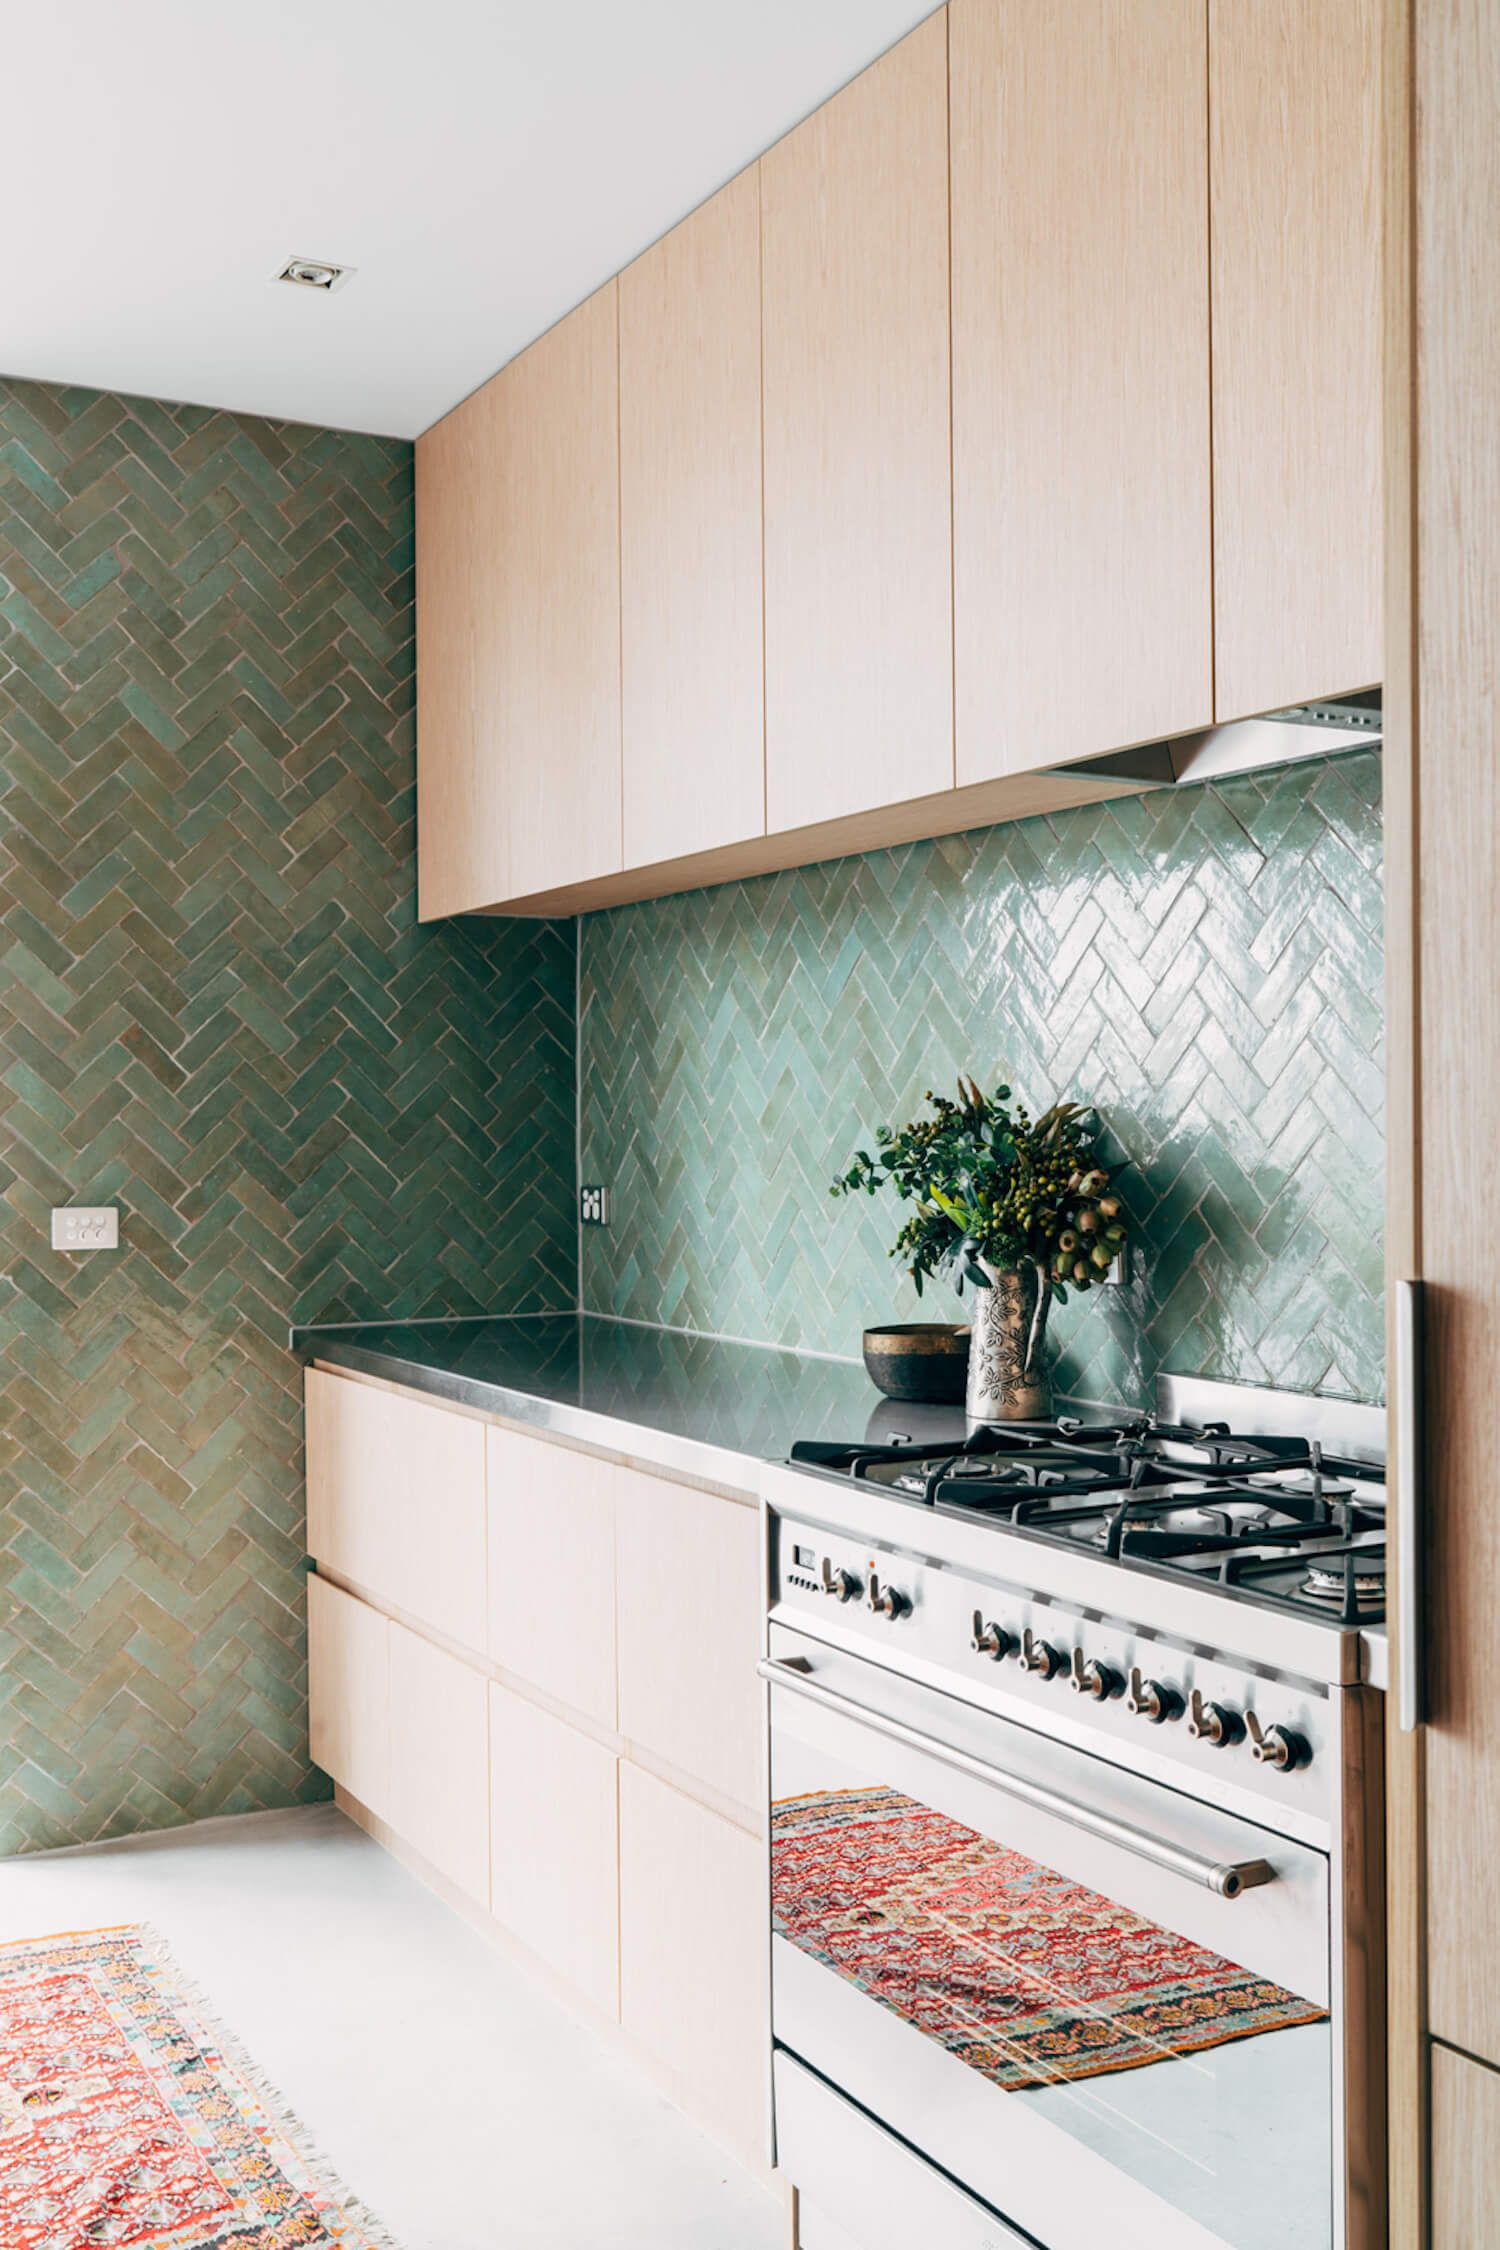 The Kitchen Combines Deep Emerald Moroccan Mosaic Tiles From Of Ezra And Stainless Steel Benchtop Creating A Modern Yet Earthy Aesthetic Interiors